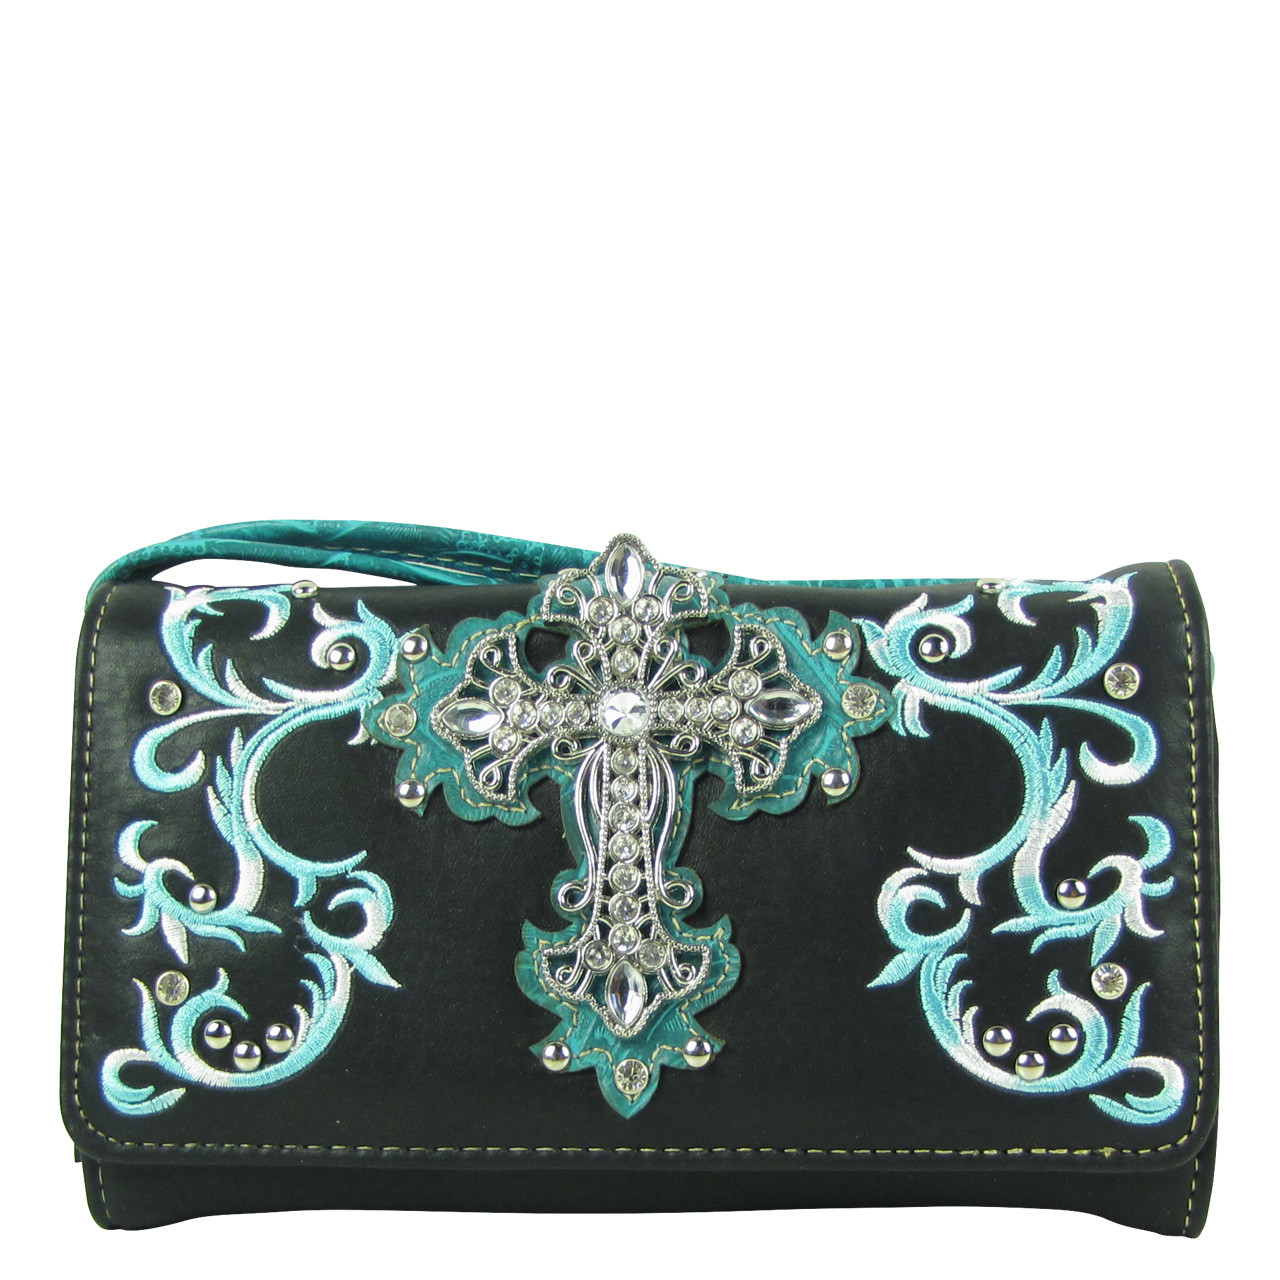 BLACK TURQUOISE RHINESTONE CROSS LOOK CLUTCH TRIFOLD WALLET CW1-0472BLK/TRQ